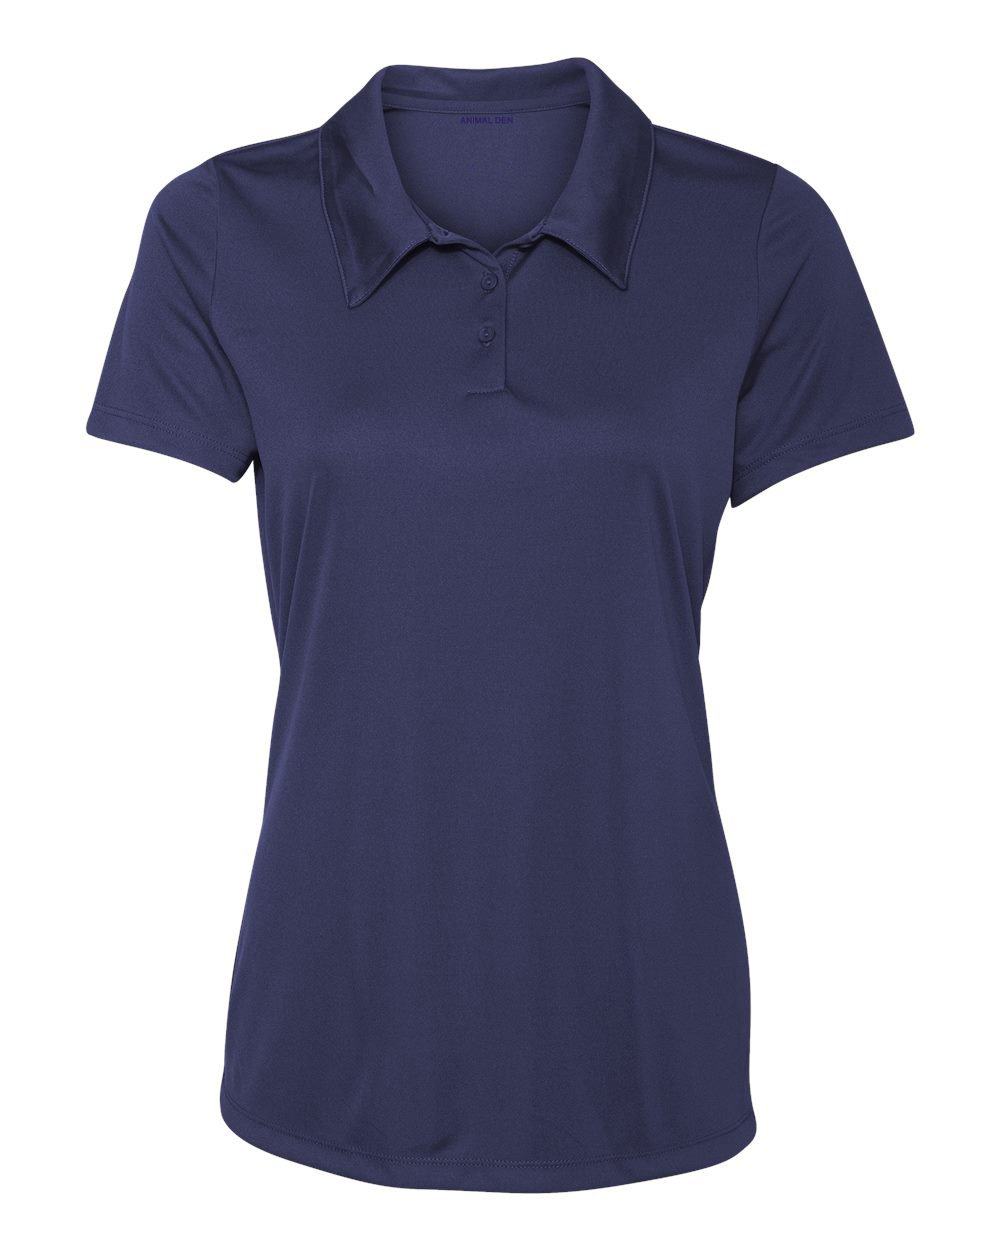 Women's Dry-Fit Golf Polo Shirts 3-Button Golf Polo's in 20 Colors XS-3XL Shirt NAVY-3XL by Animal Den